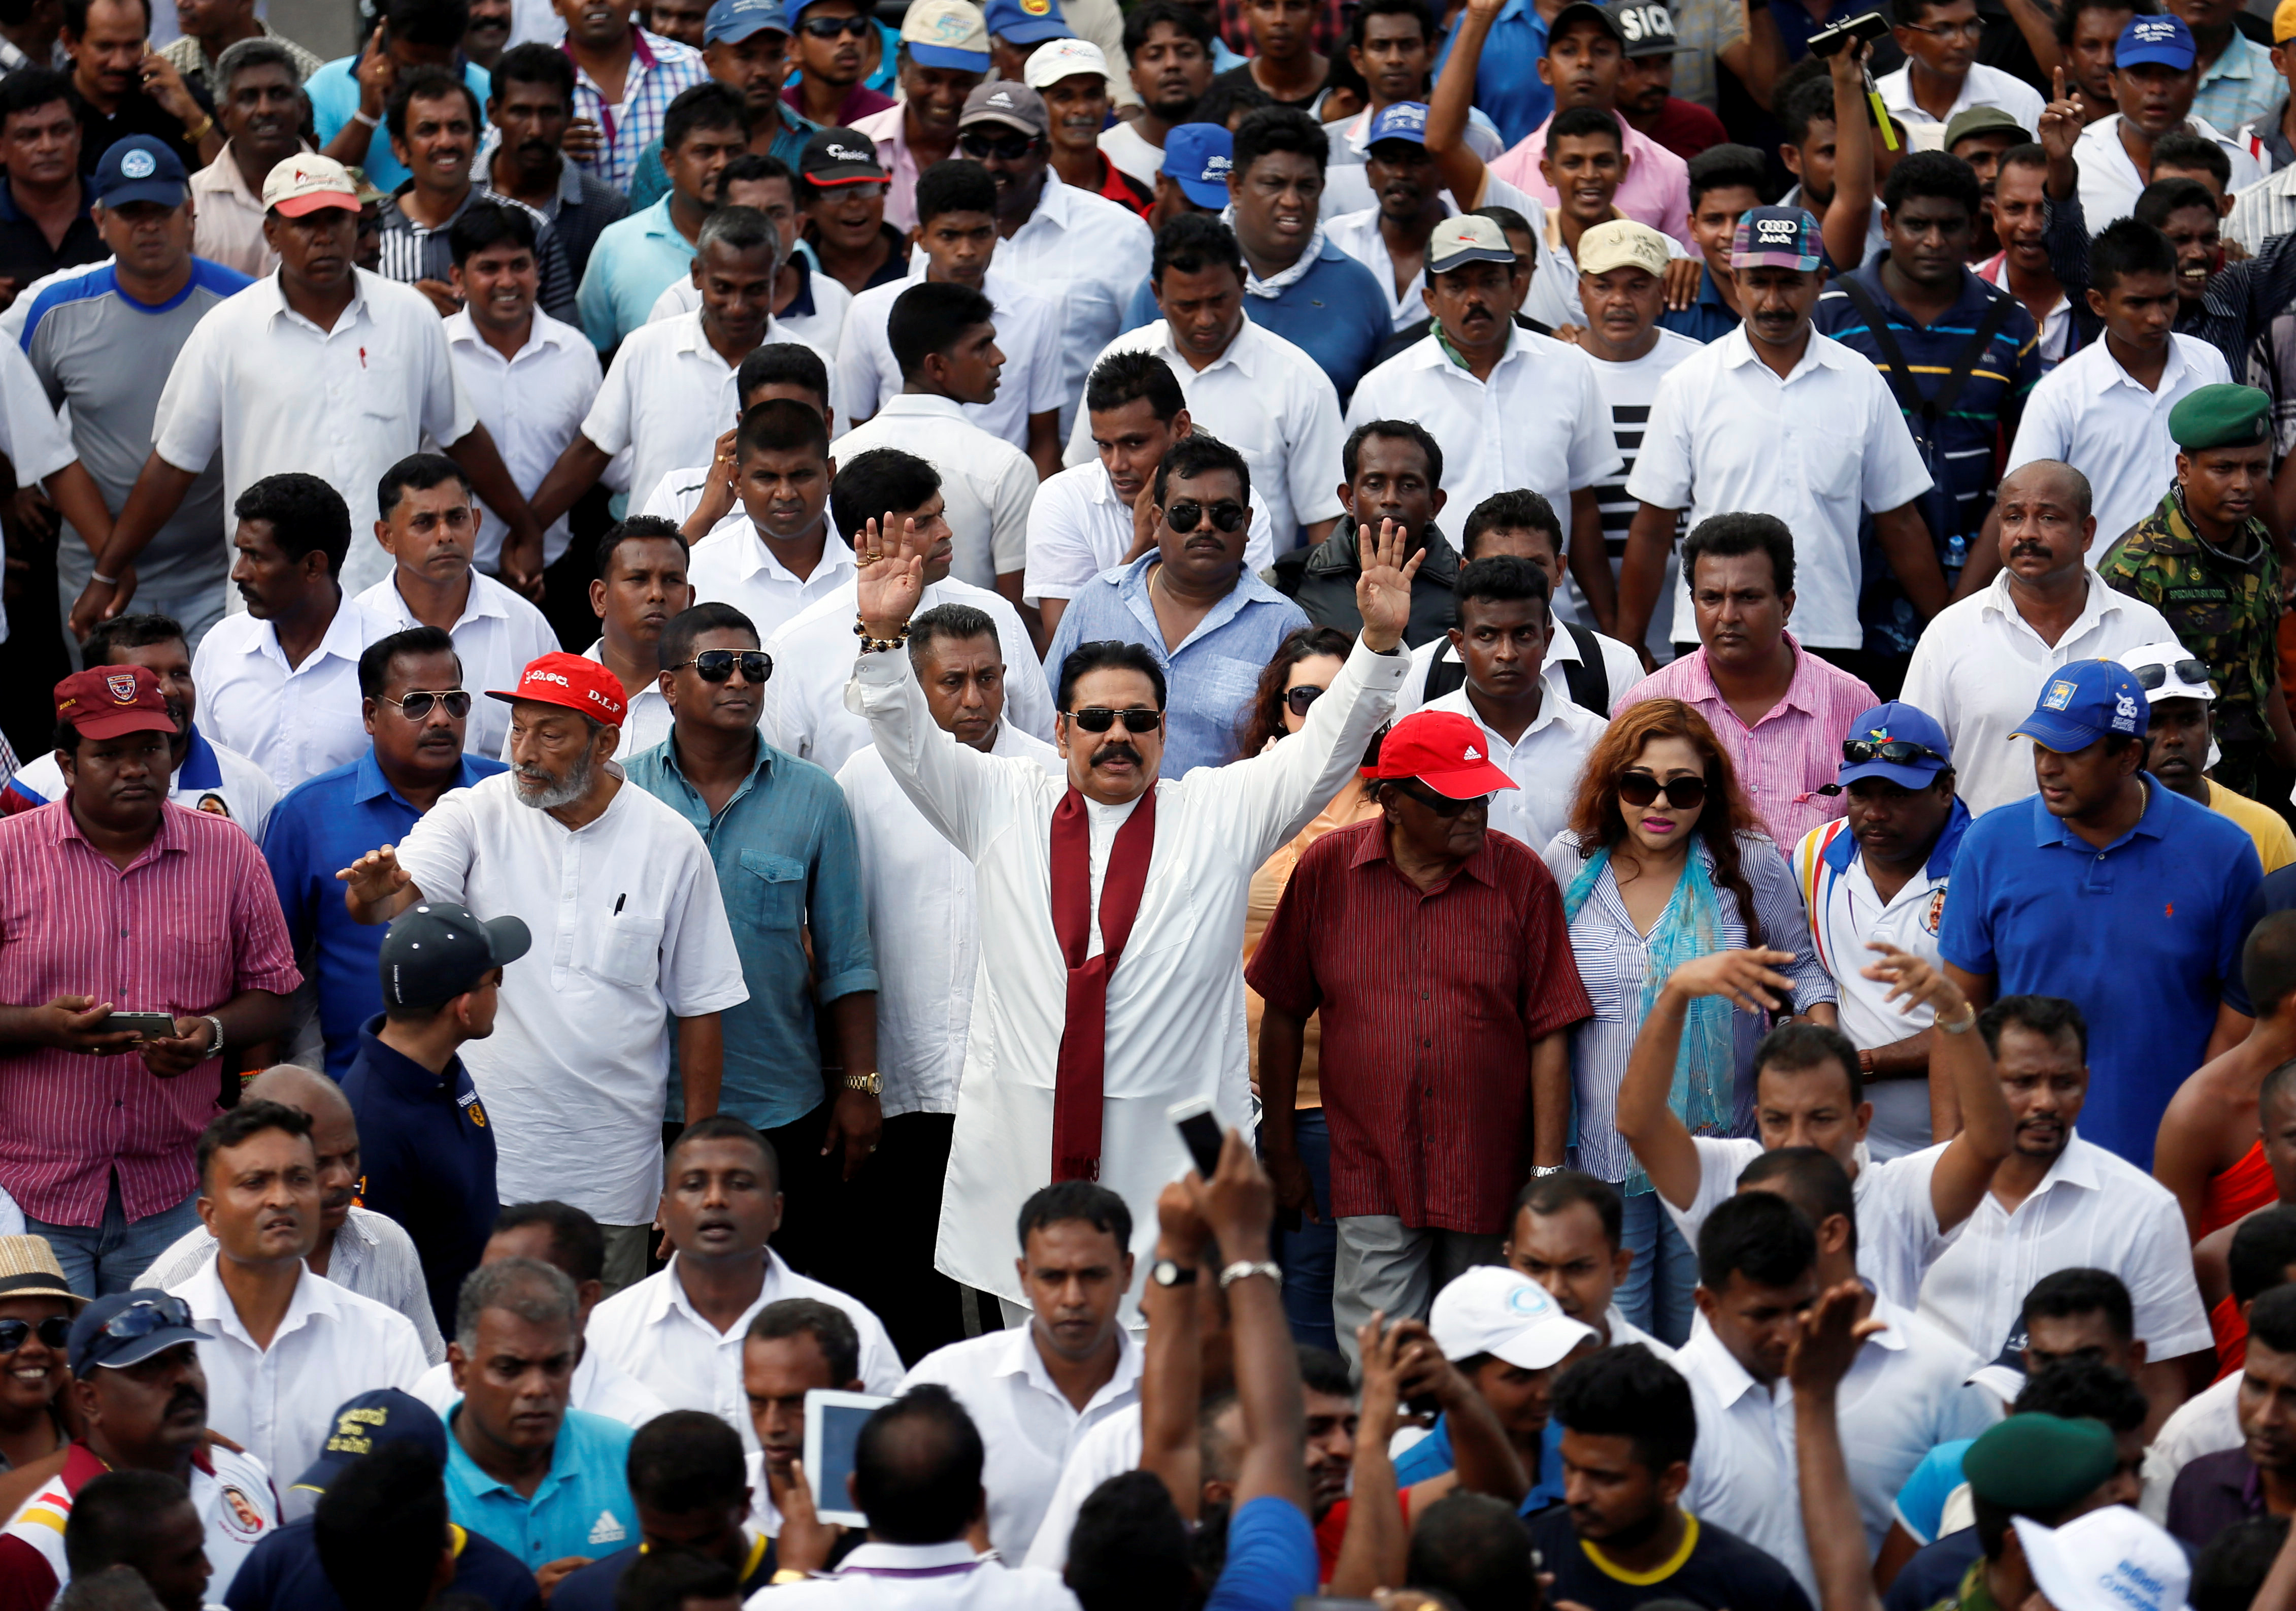 Sri Lanka's former President Mahinda Rajapaksa waves at his supporters at the end of the five-day protest march from Kandy  to Colombo, in Sri Lanka, Aug. 1, 2016.